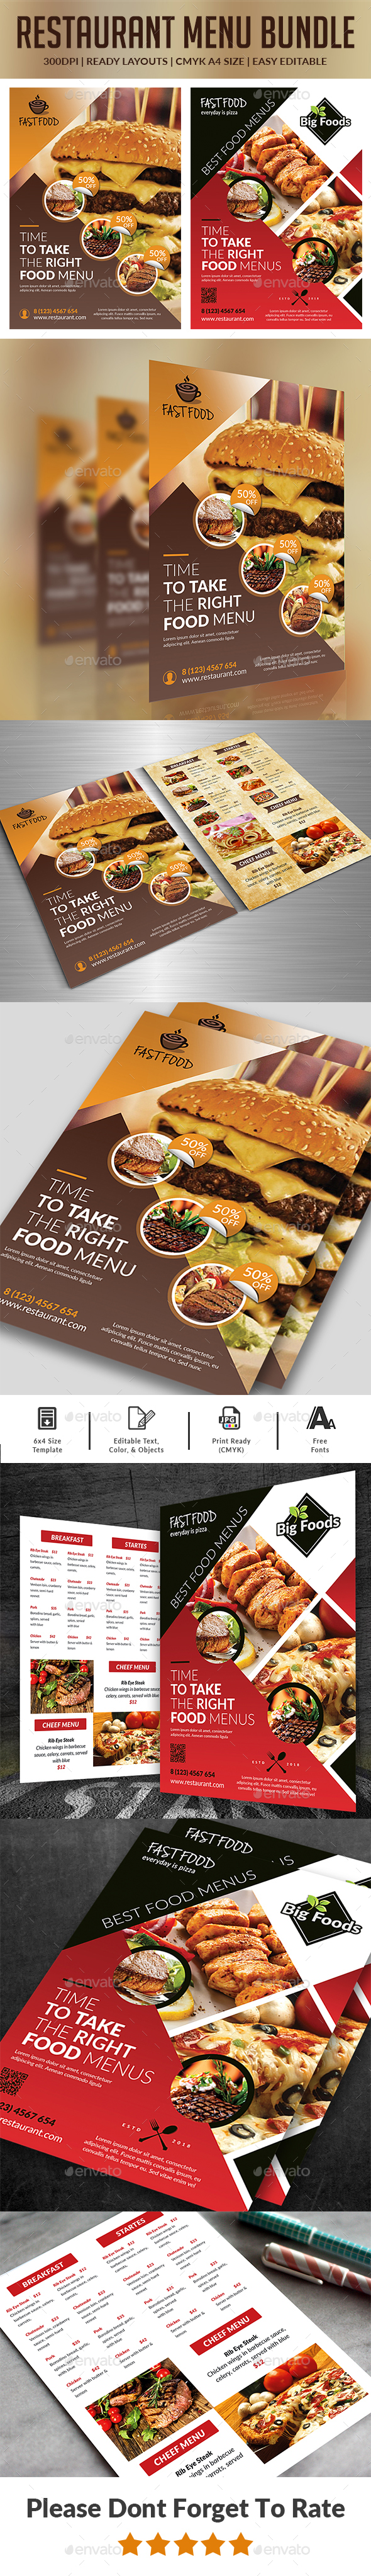 Food Menu Flyers Bundle - Food Menus Print Templates